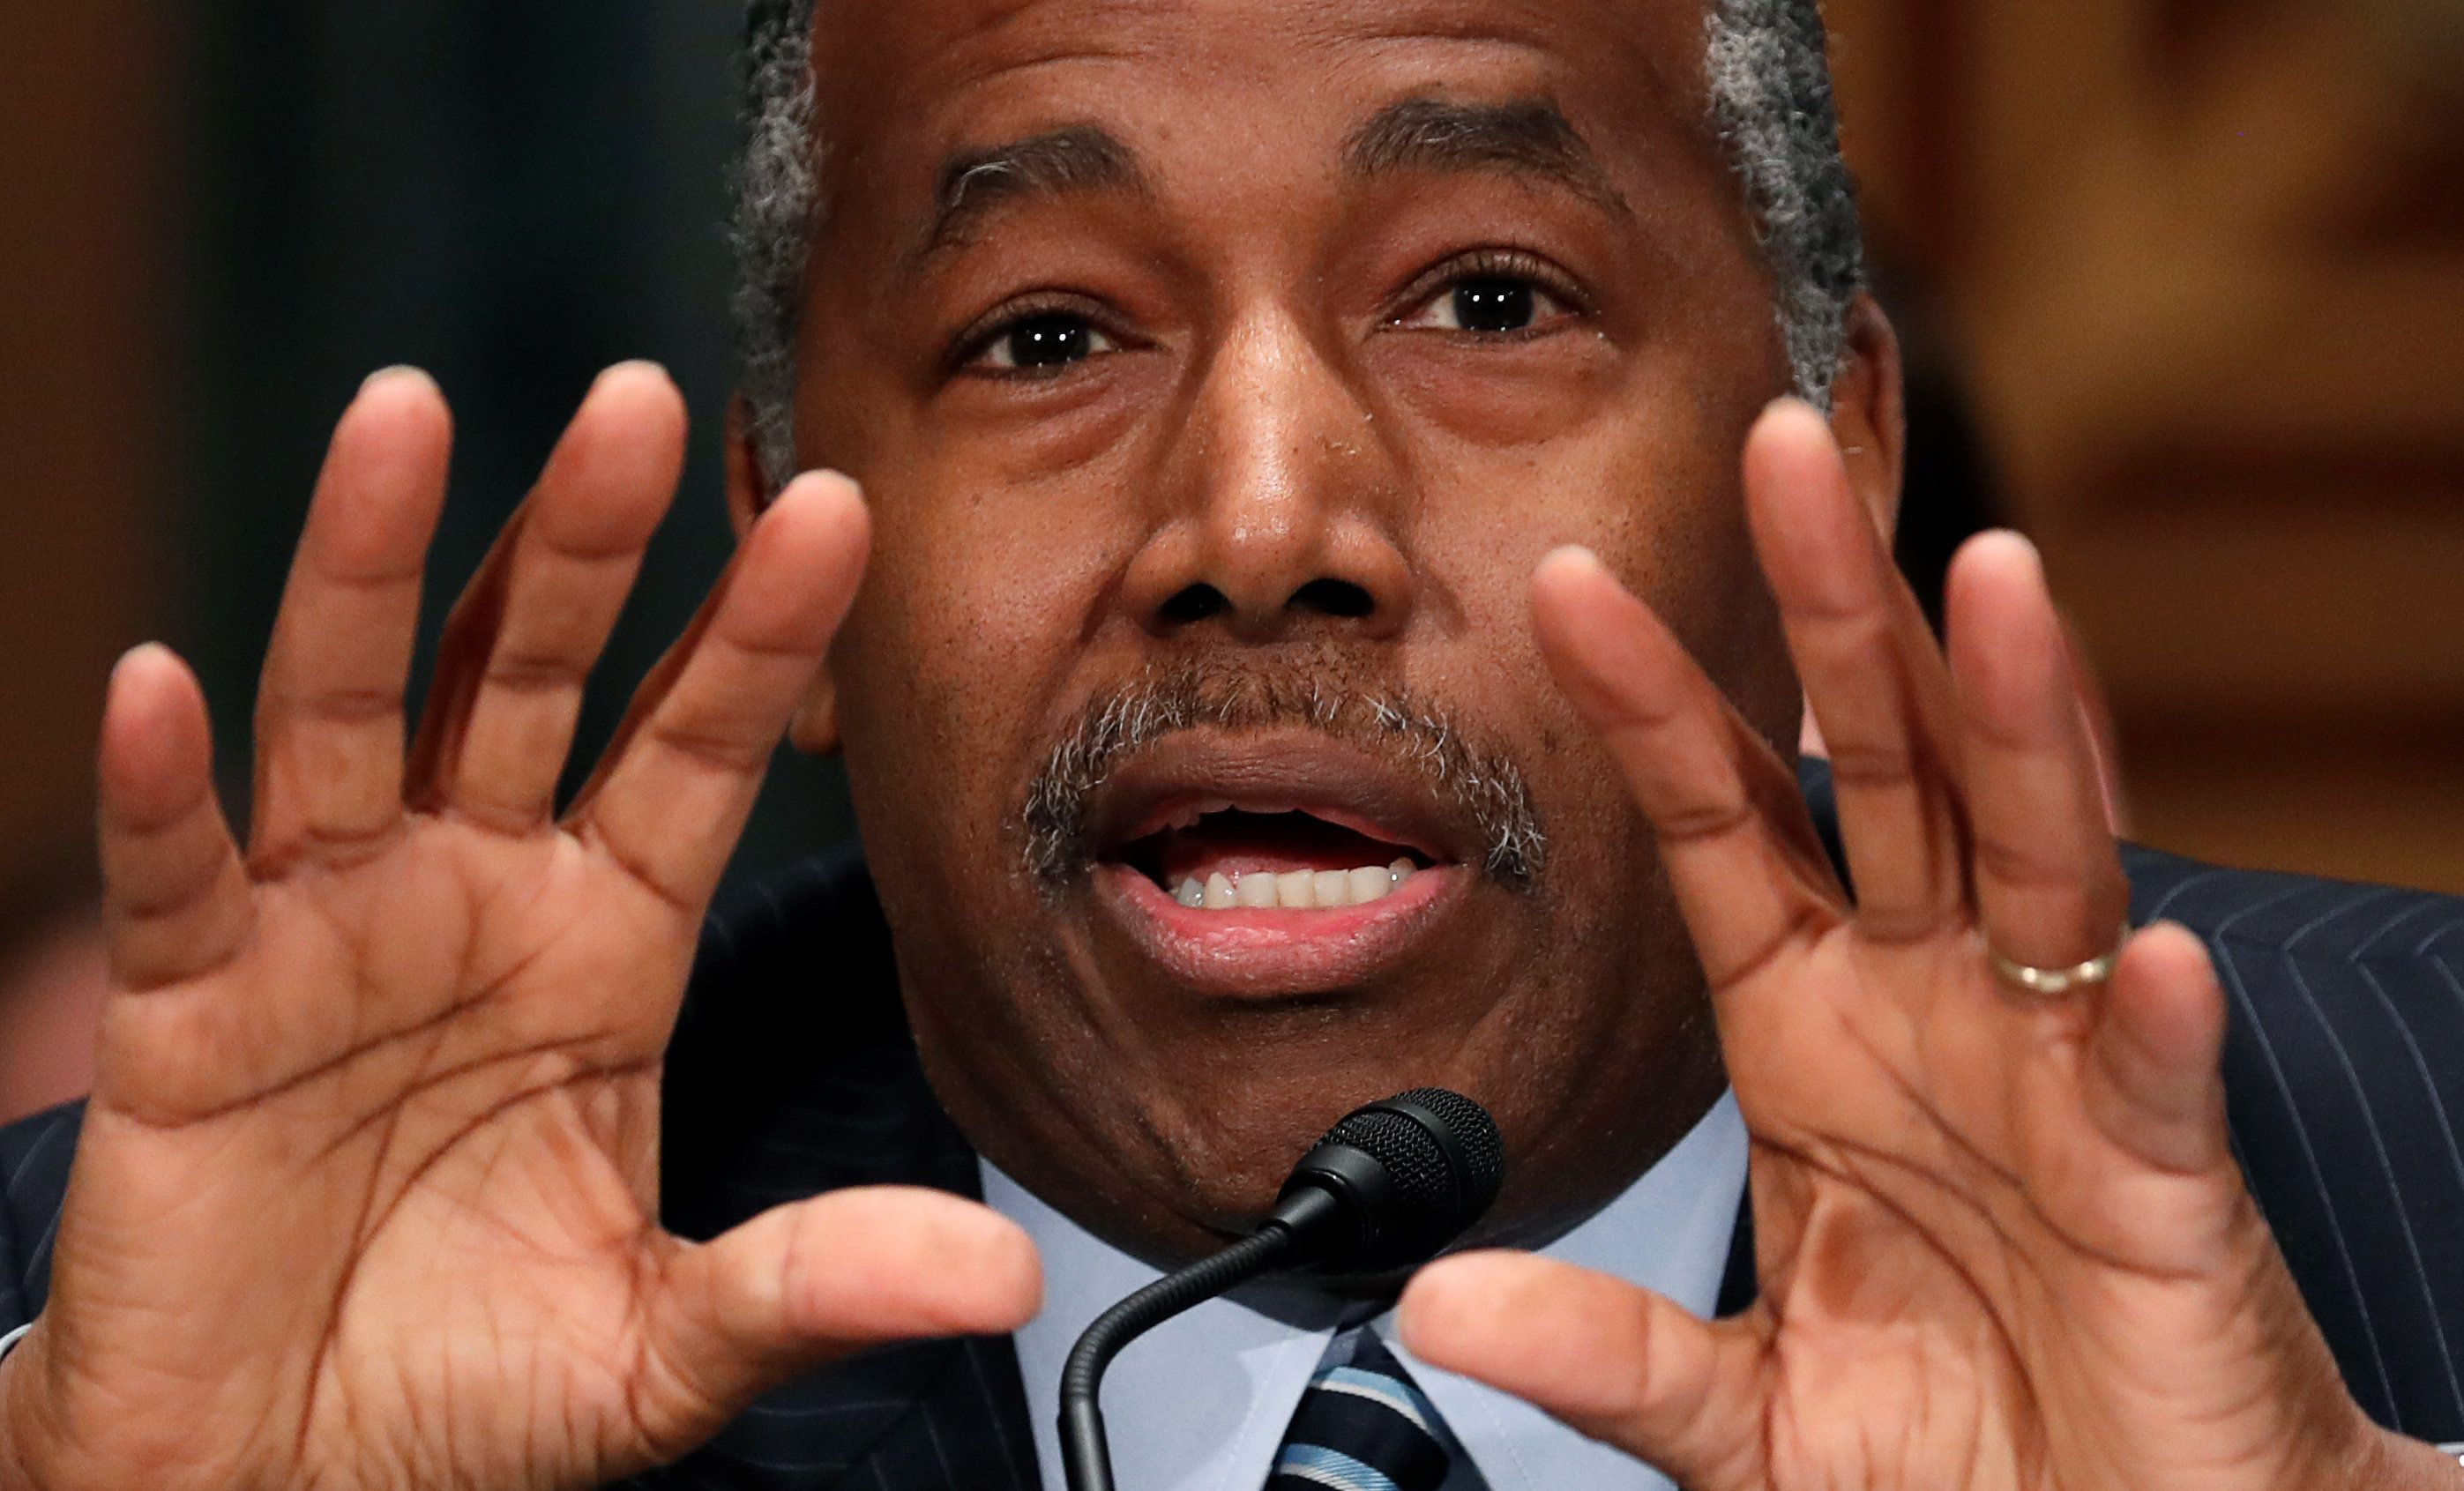 """U.S. Secretary of the Department of Housing and Urban Development Ben Carson testifies before a Senate Banking Committee hearing entitled """"Oversight of HUD"""" on Capitol Hill in Washington, U.S., March 22, 2018.  REUTERS/Kevin Lamarque"""